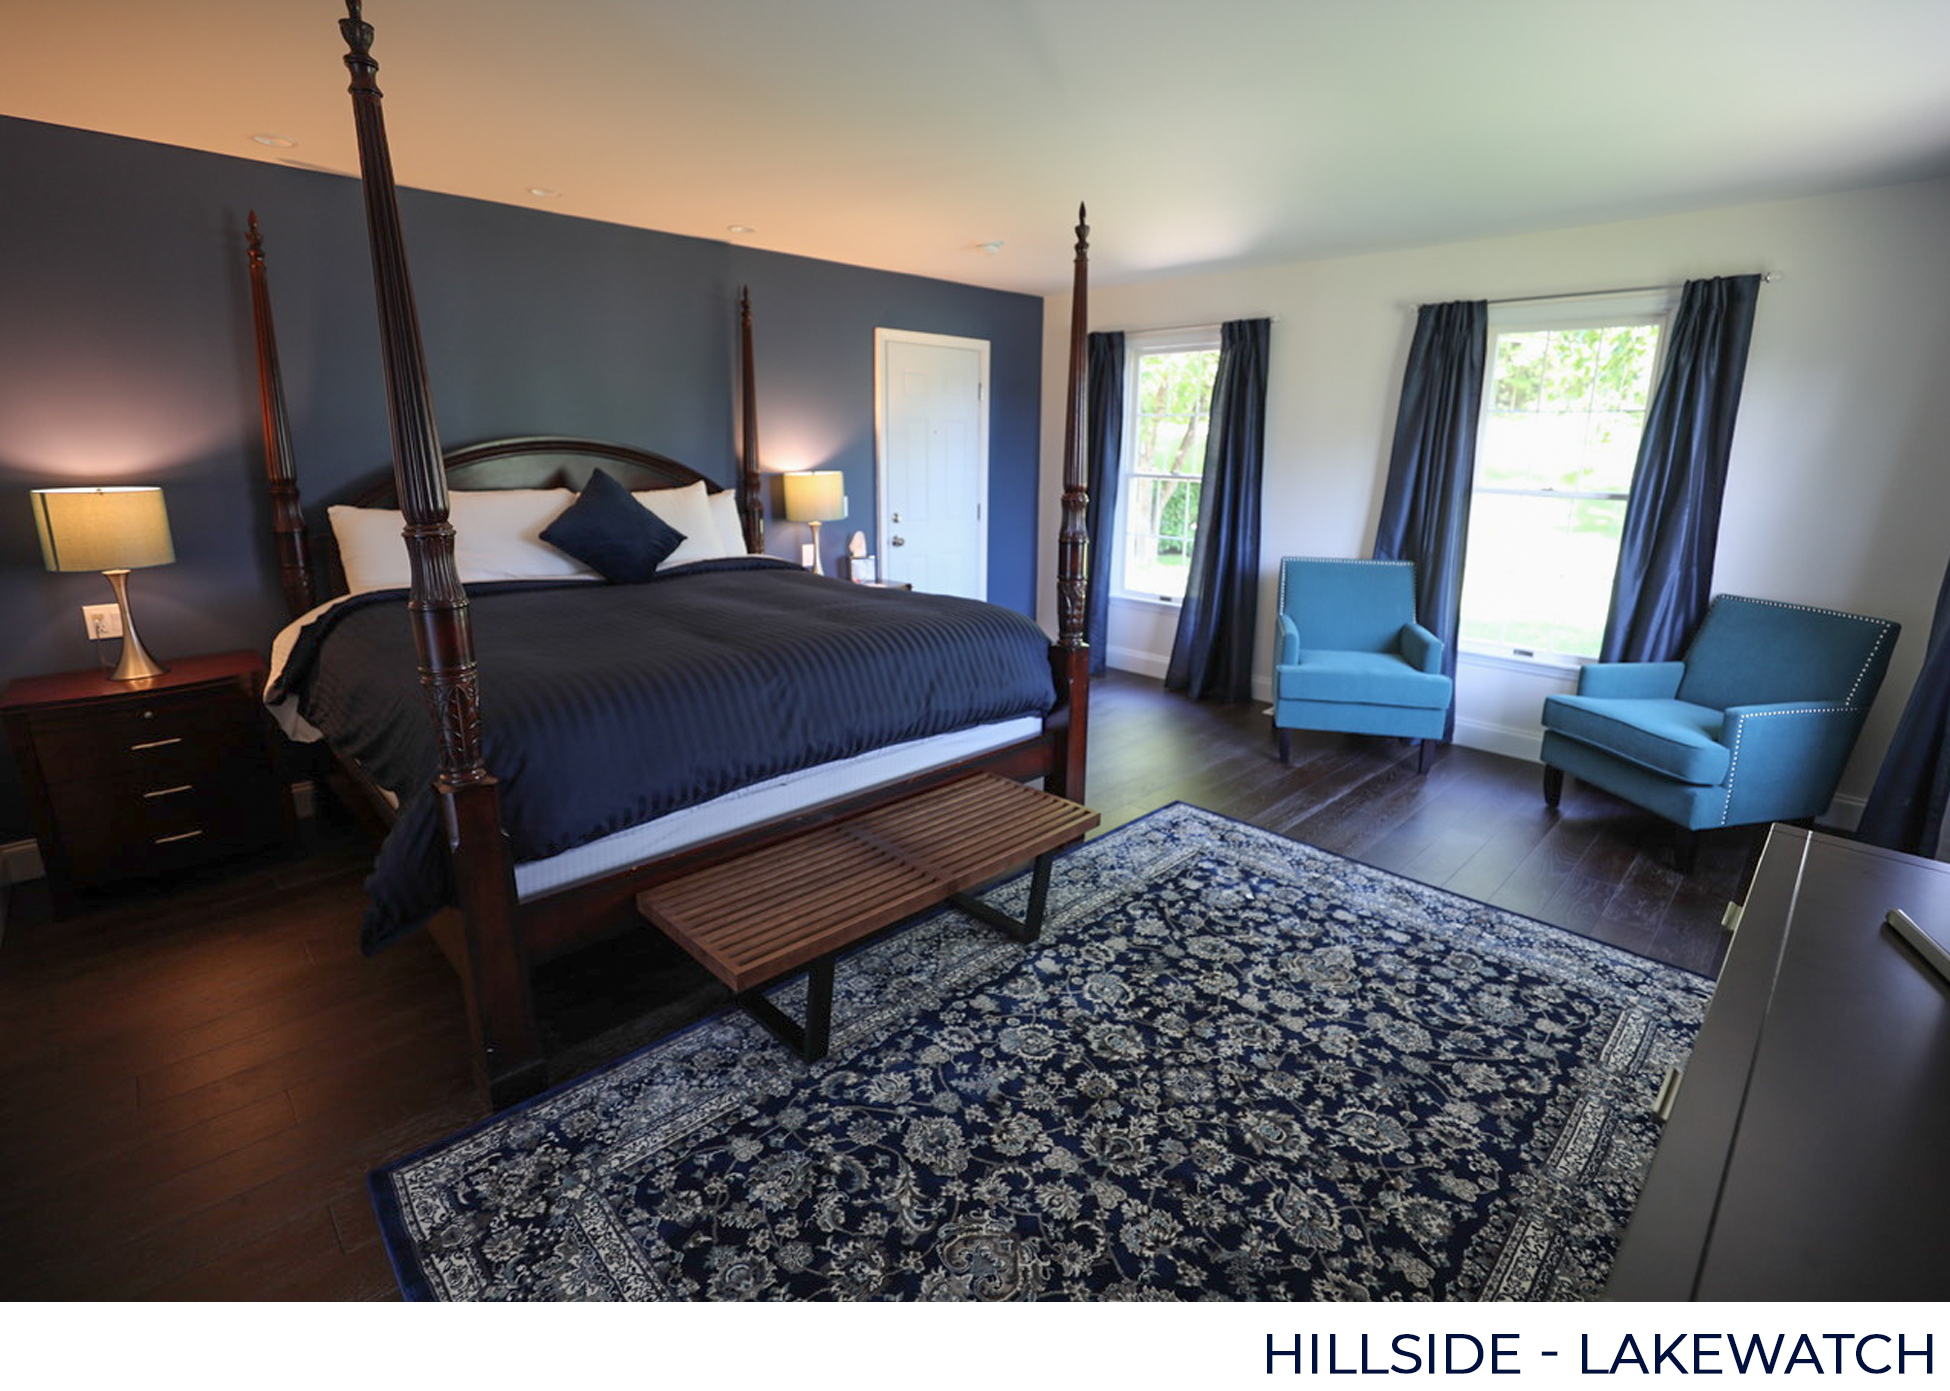 Trumansburg Lakefront Rooms & Suites